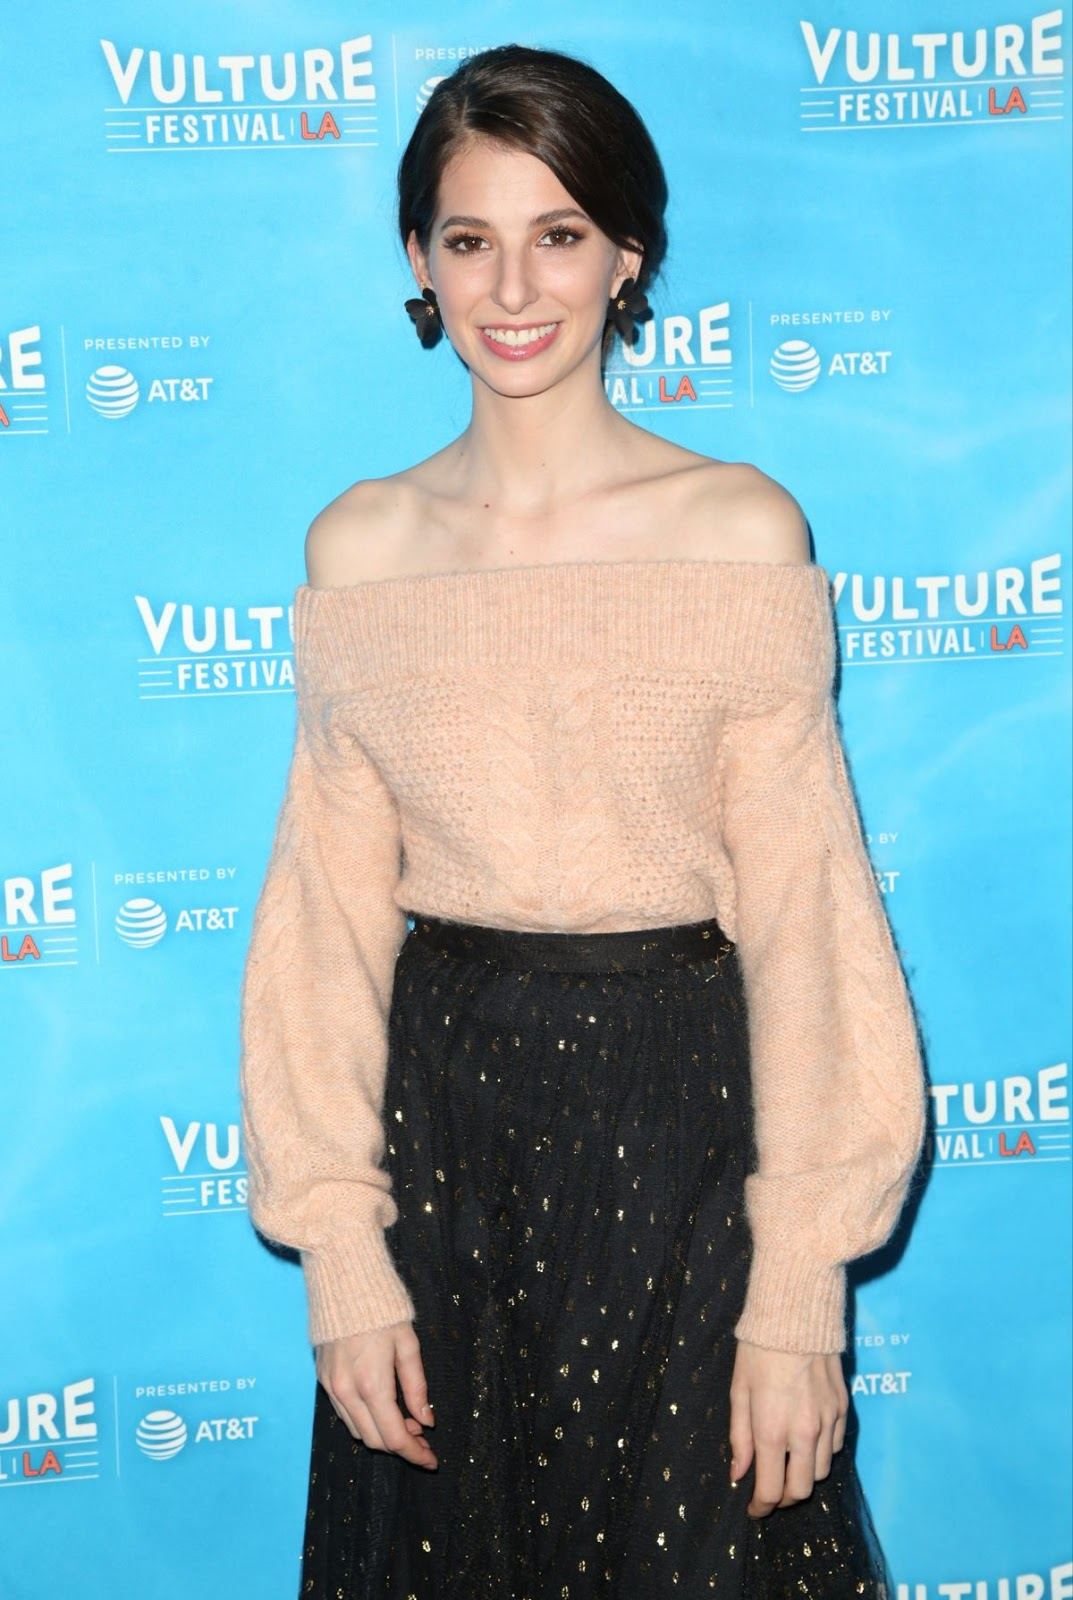 Genevieve Buechner at Unreal vs Superstore Vulture Festival Event in Los Angeles